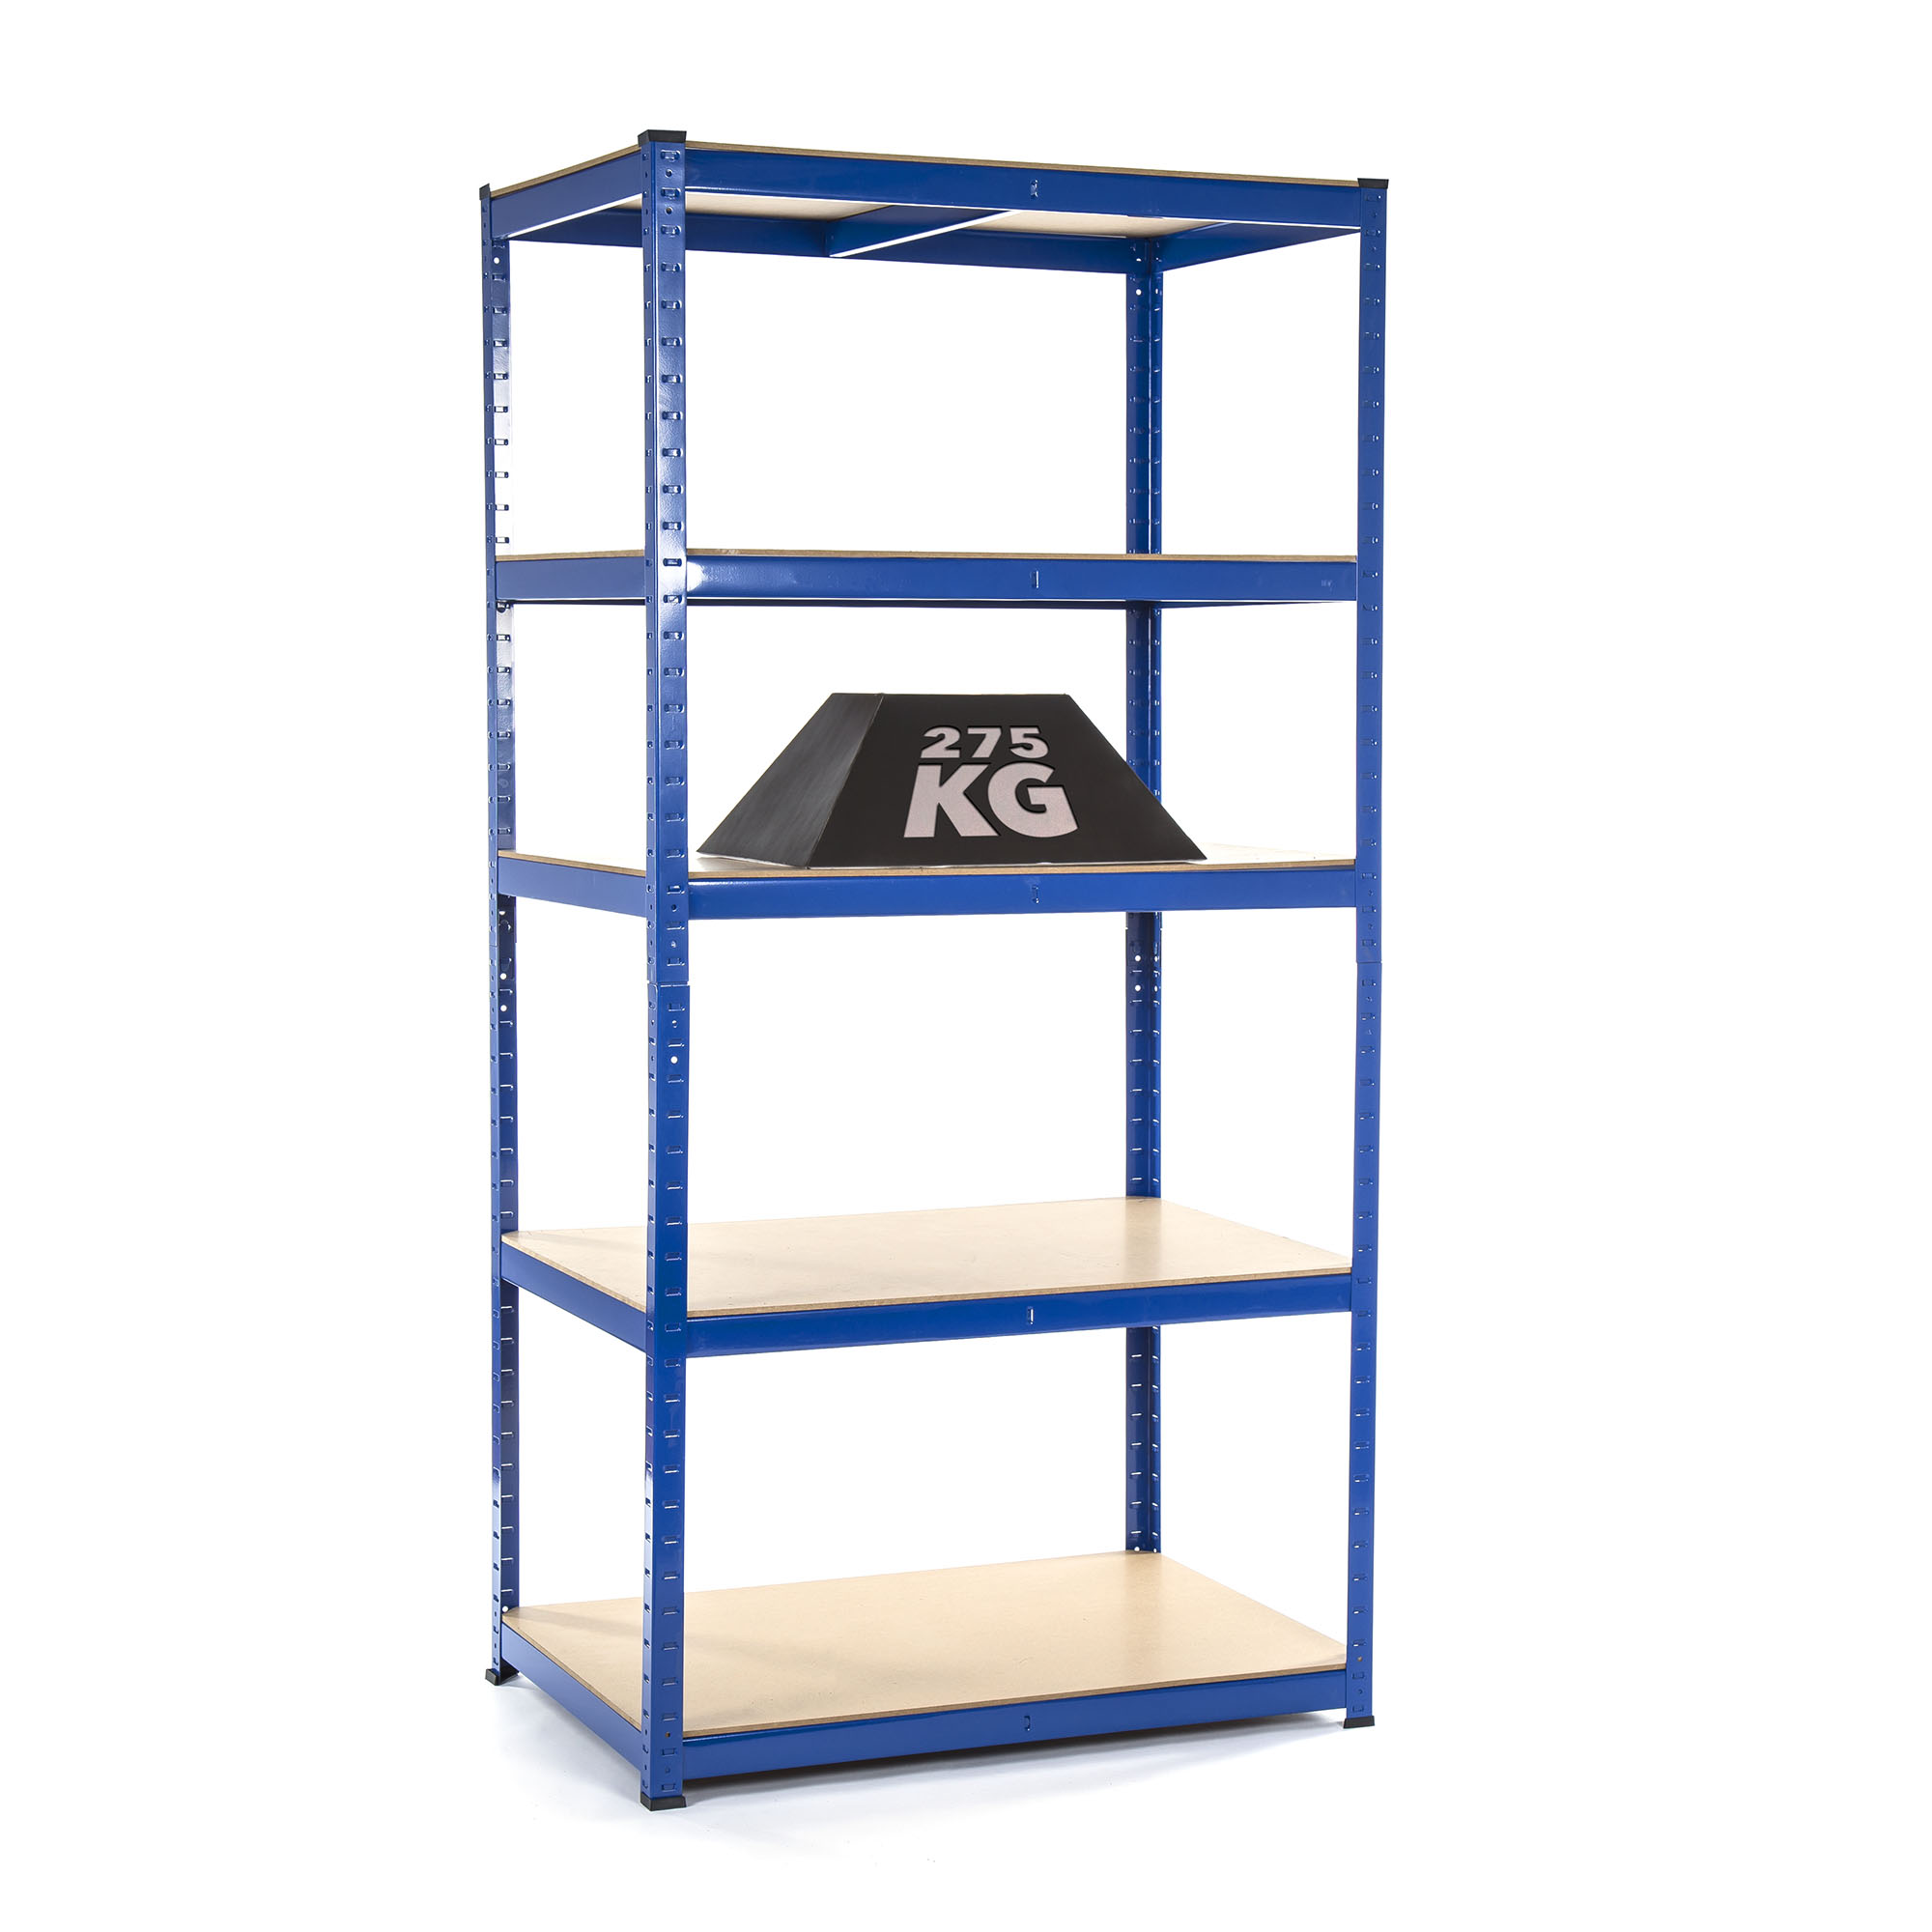 Economy Racking for Home, Garages, and for general day to day items and document storage - Assembly Instructions